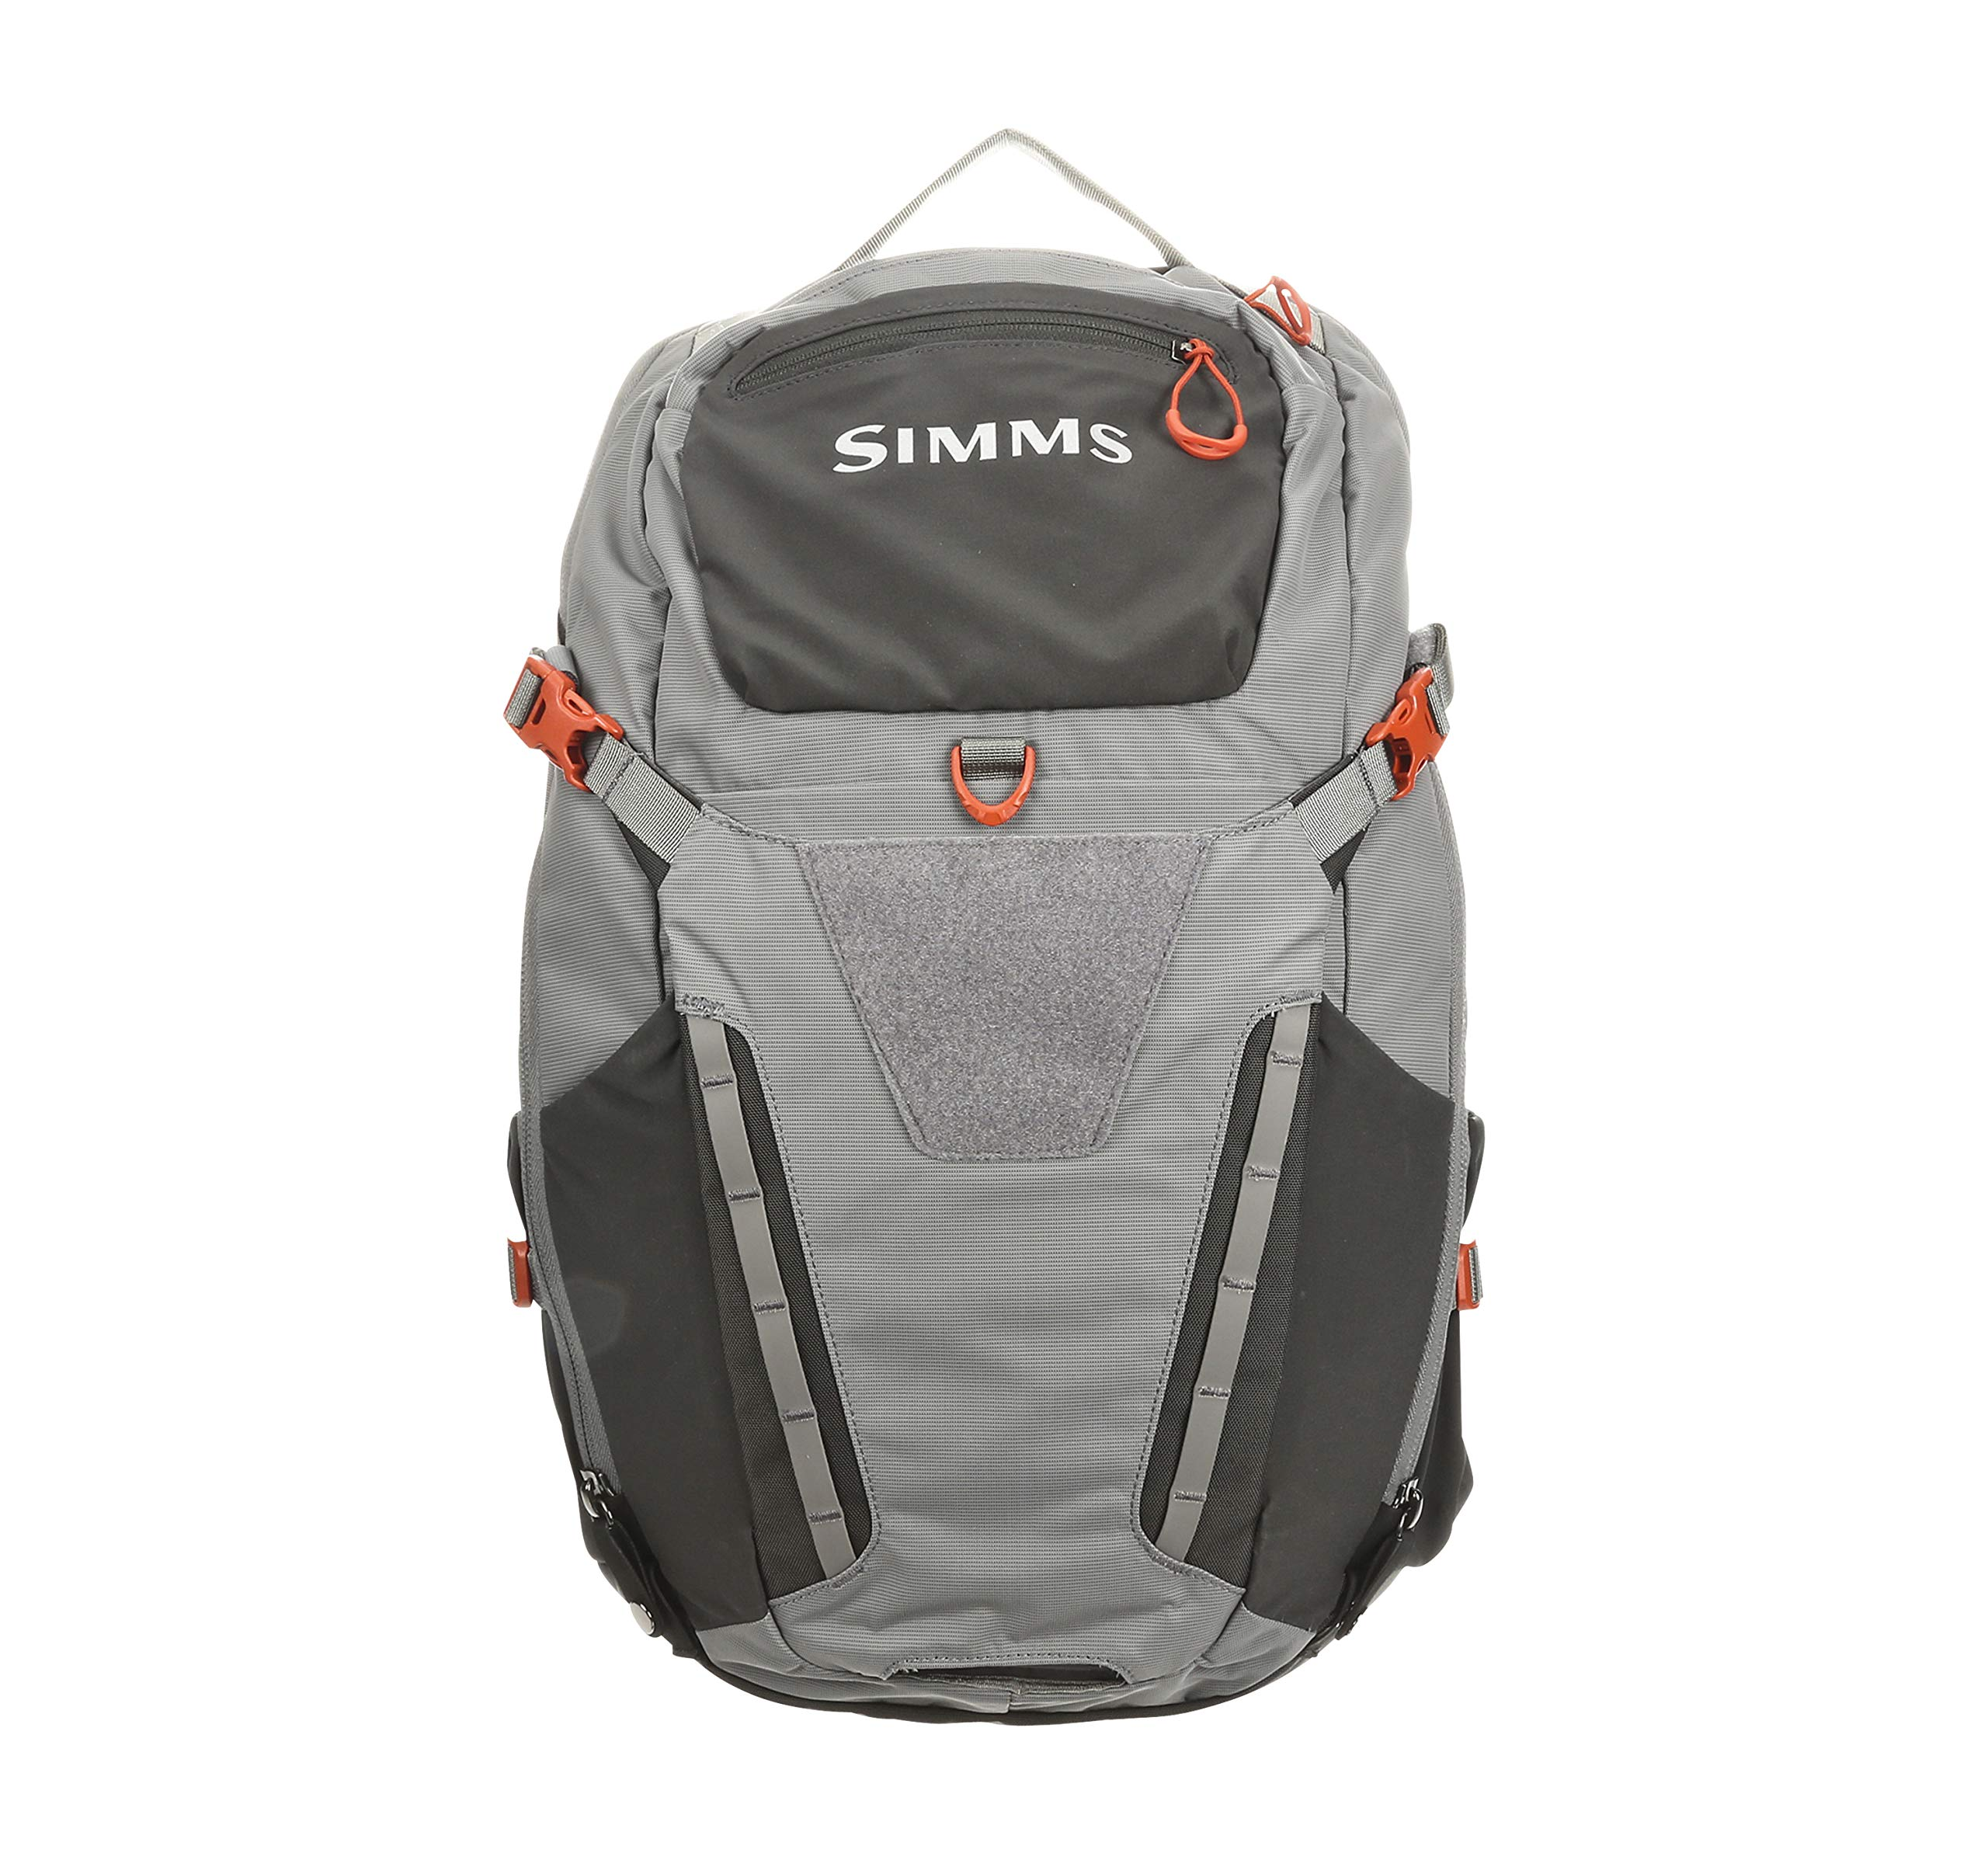 Simms Freestone Fishing Backpack – Water Resistant 35 L Fishing Bag with Rod Holder – Magnetic Tool Docking & Fly Box Storage Pockets – Hydration Pocket